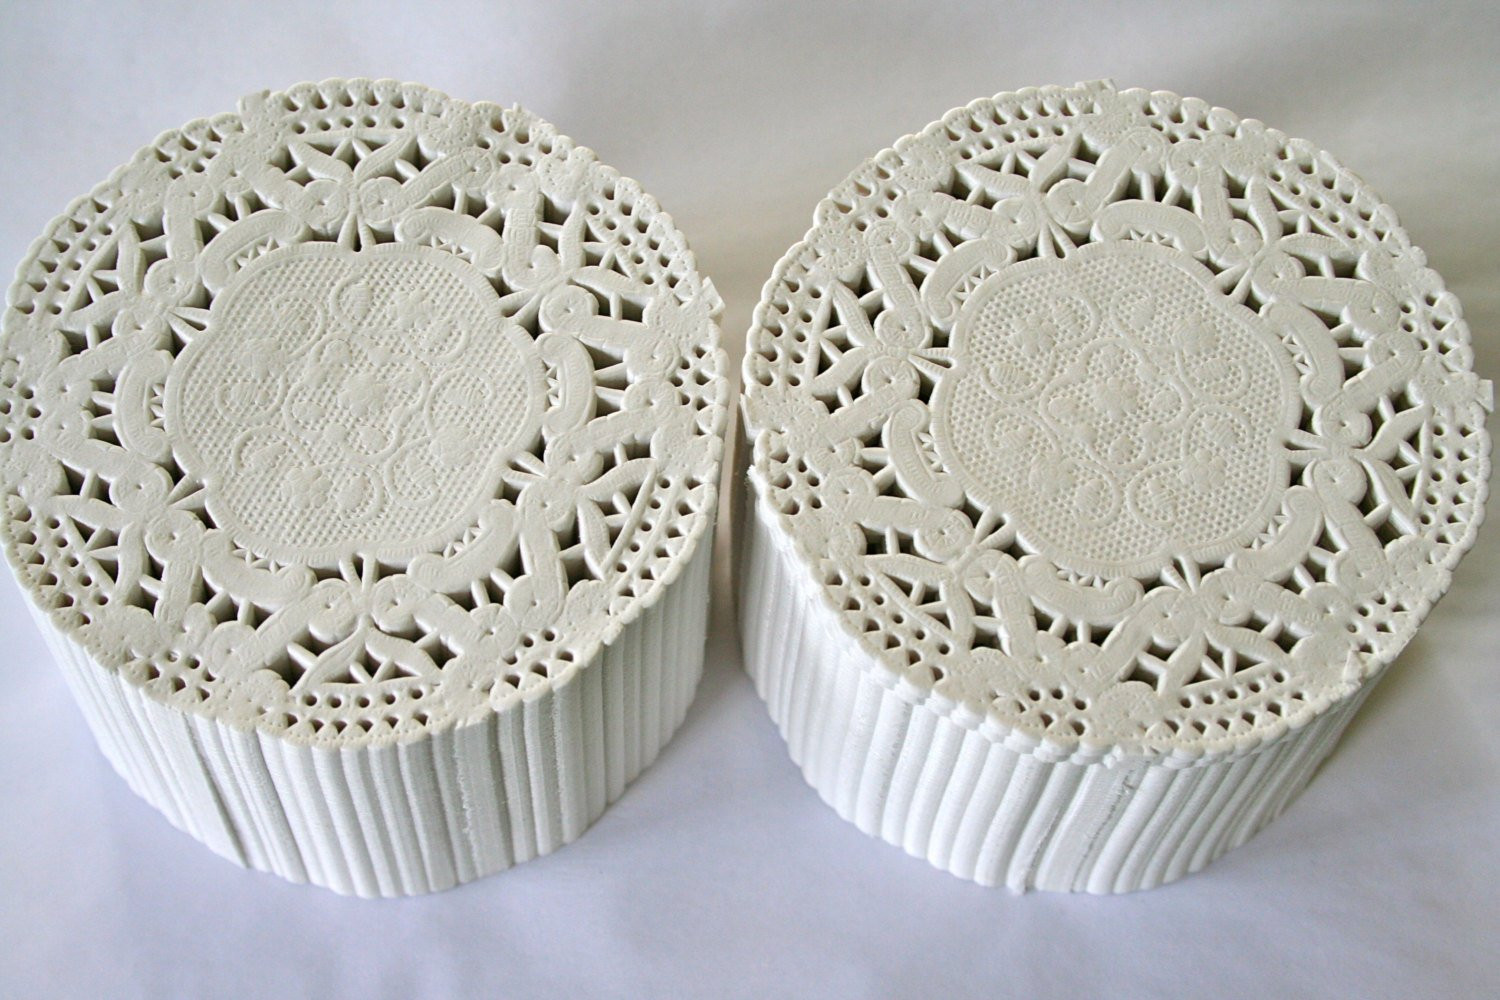 Lace Doilies Bulk Awesome 1000 French Lace Paper Doilies wholesale 3 5 Round Of Incredible 46 Images Lace Doilies Bulk